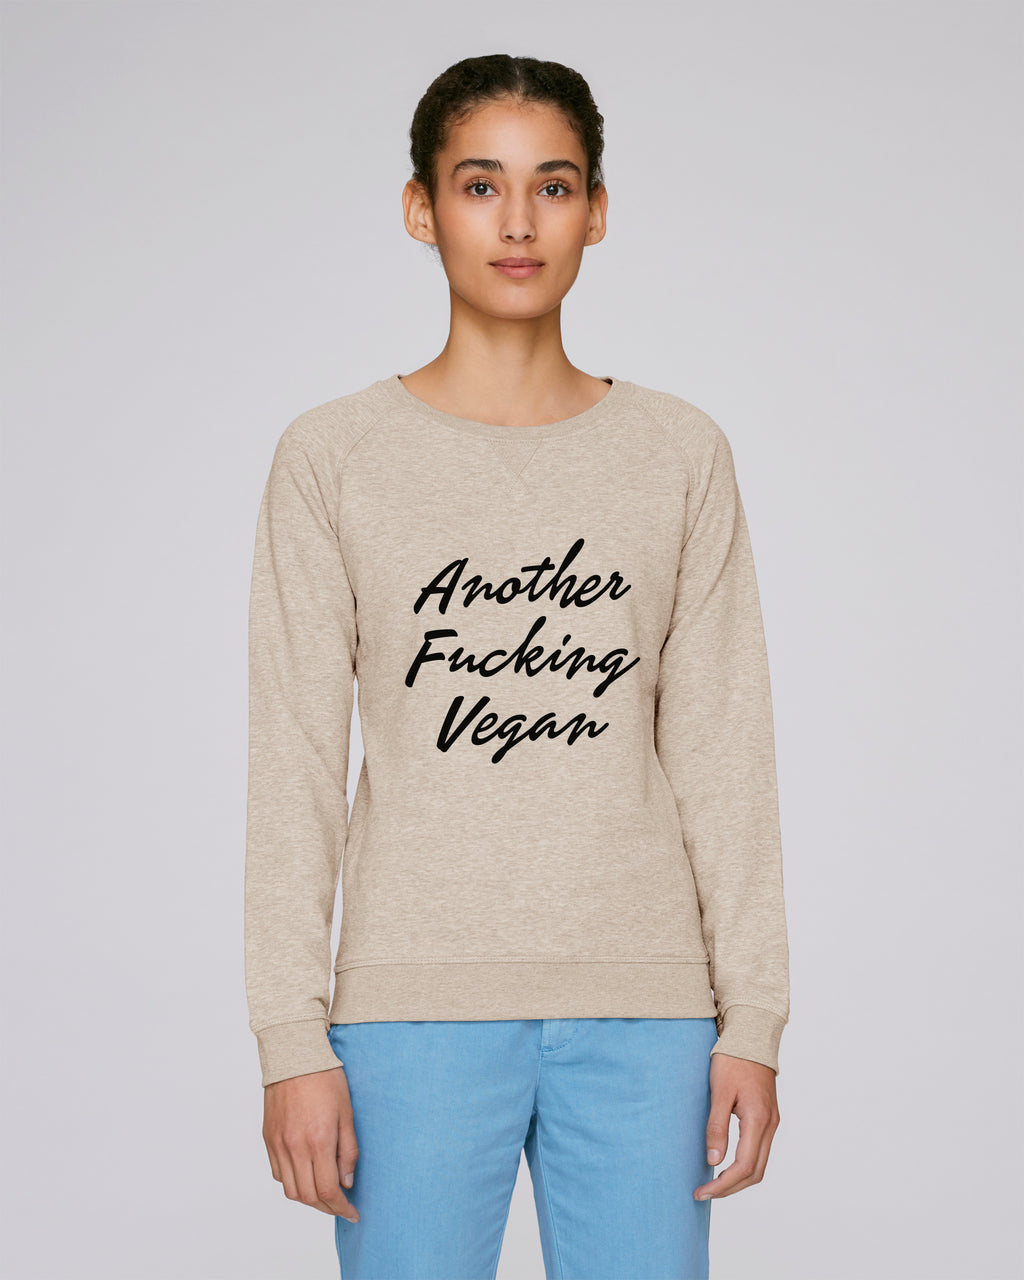 PROMO - ANOTHER FUCKING VEGAN 2018 - Raglan